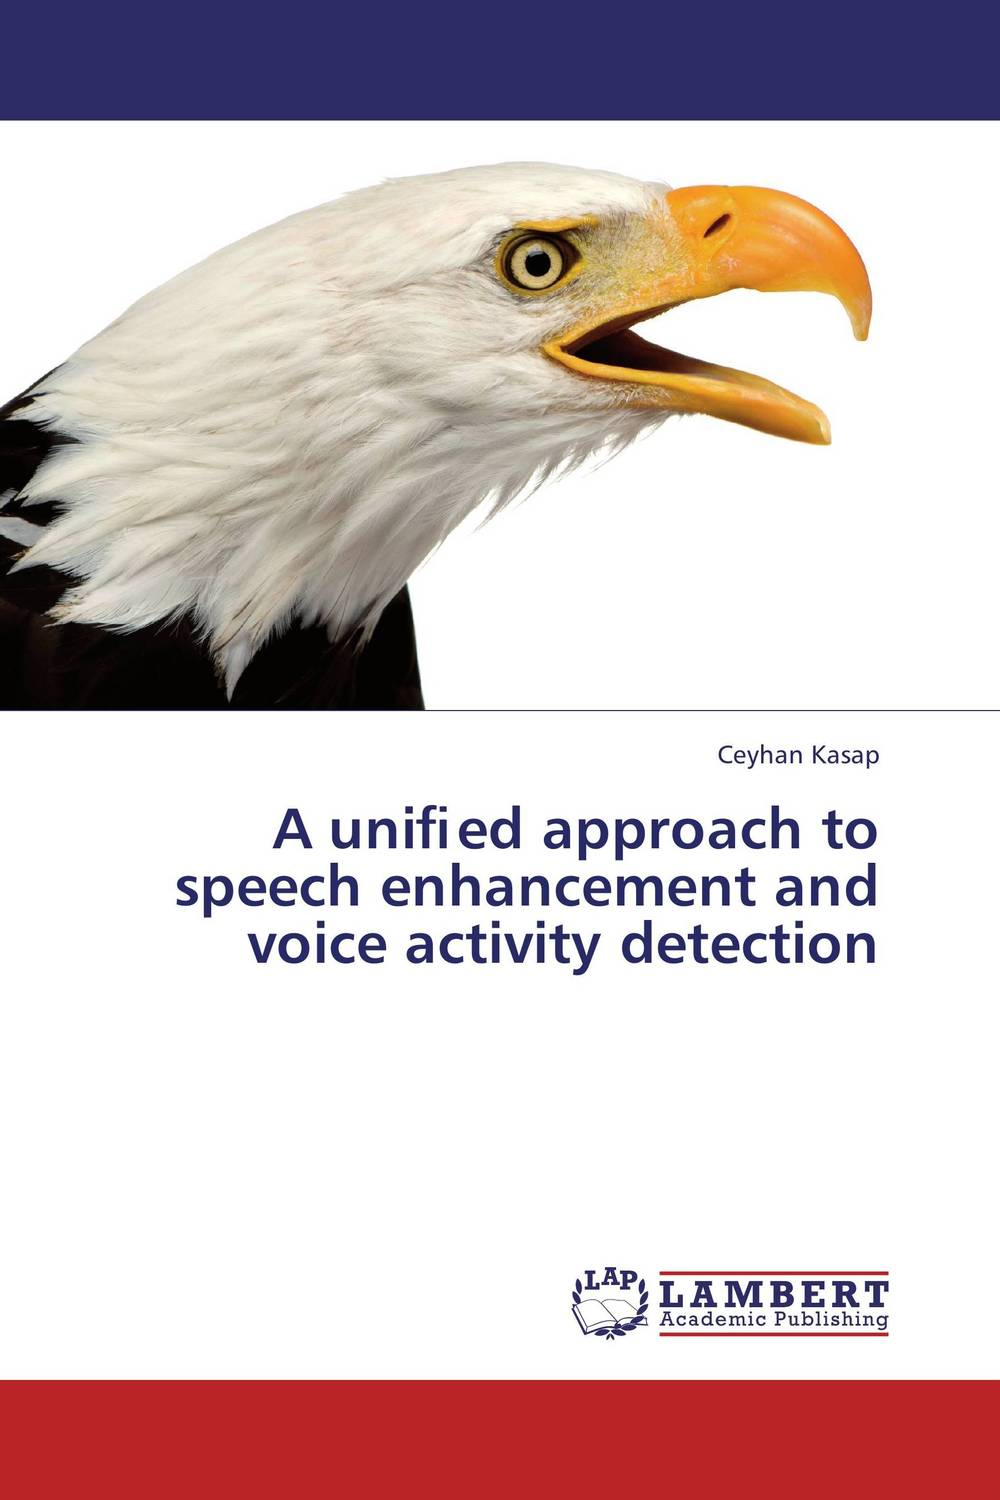 A uni?ed approach to speech enhancement and voice activity detection bless ed are the meek pубашка